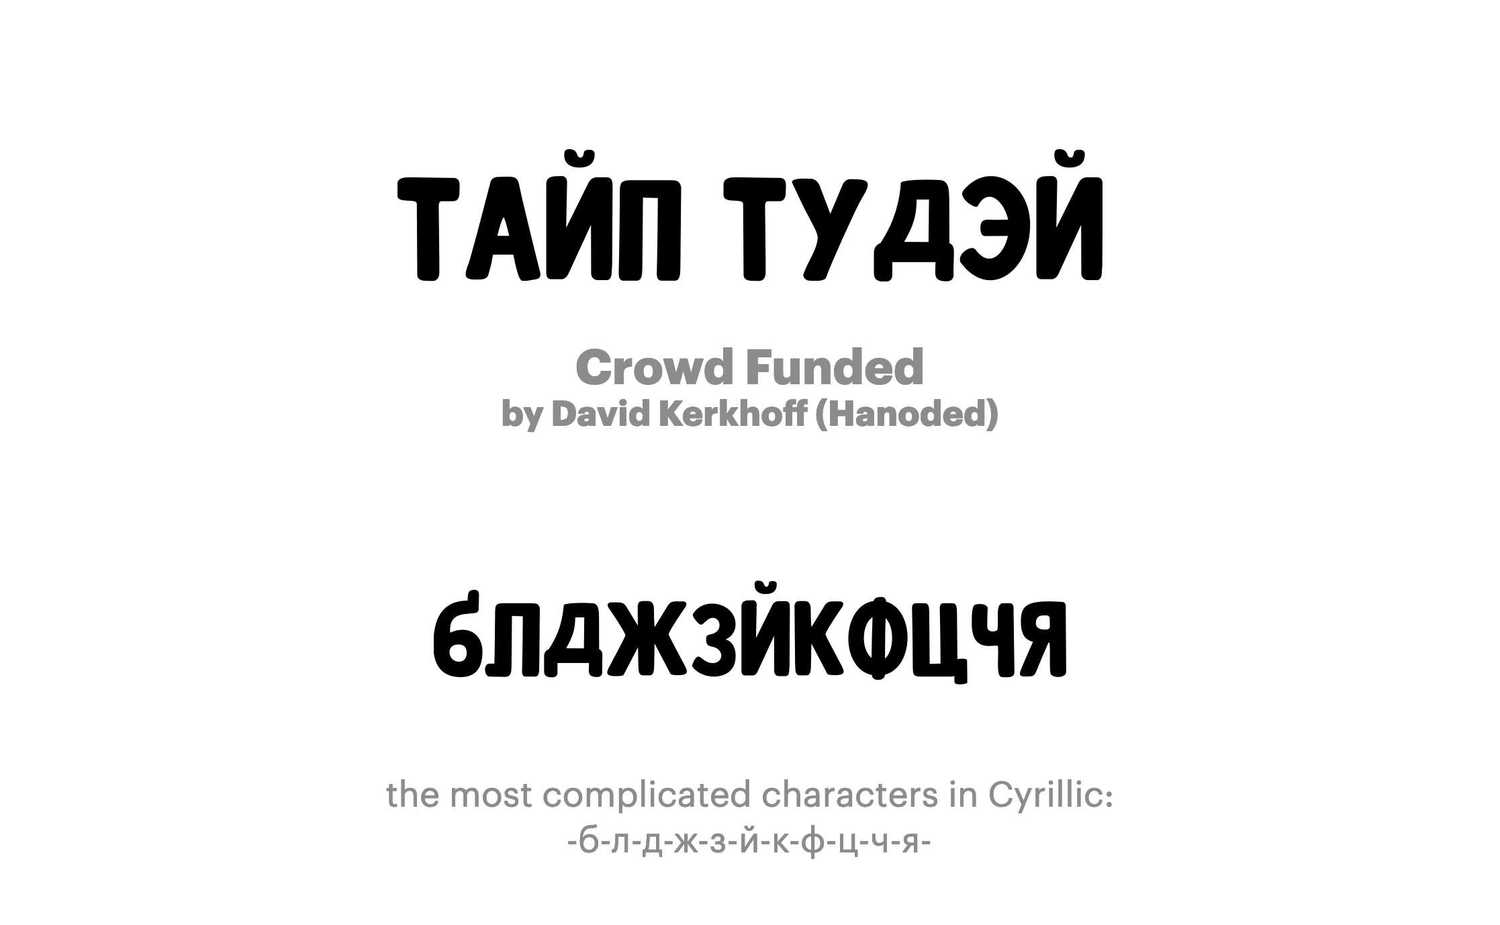 Crowd-Funded-by-David-Kerkhoff-(Hanoded)